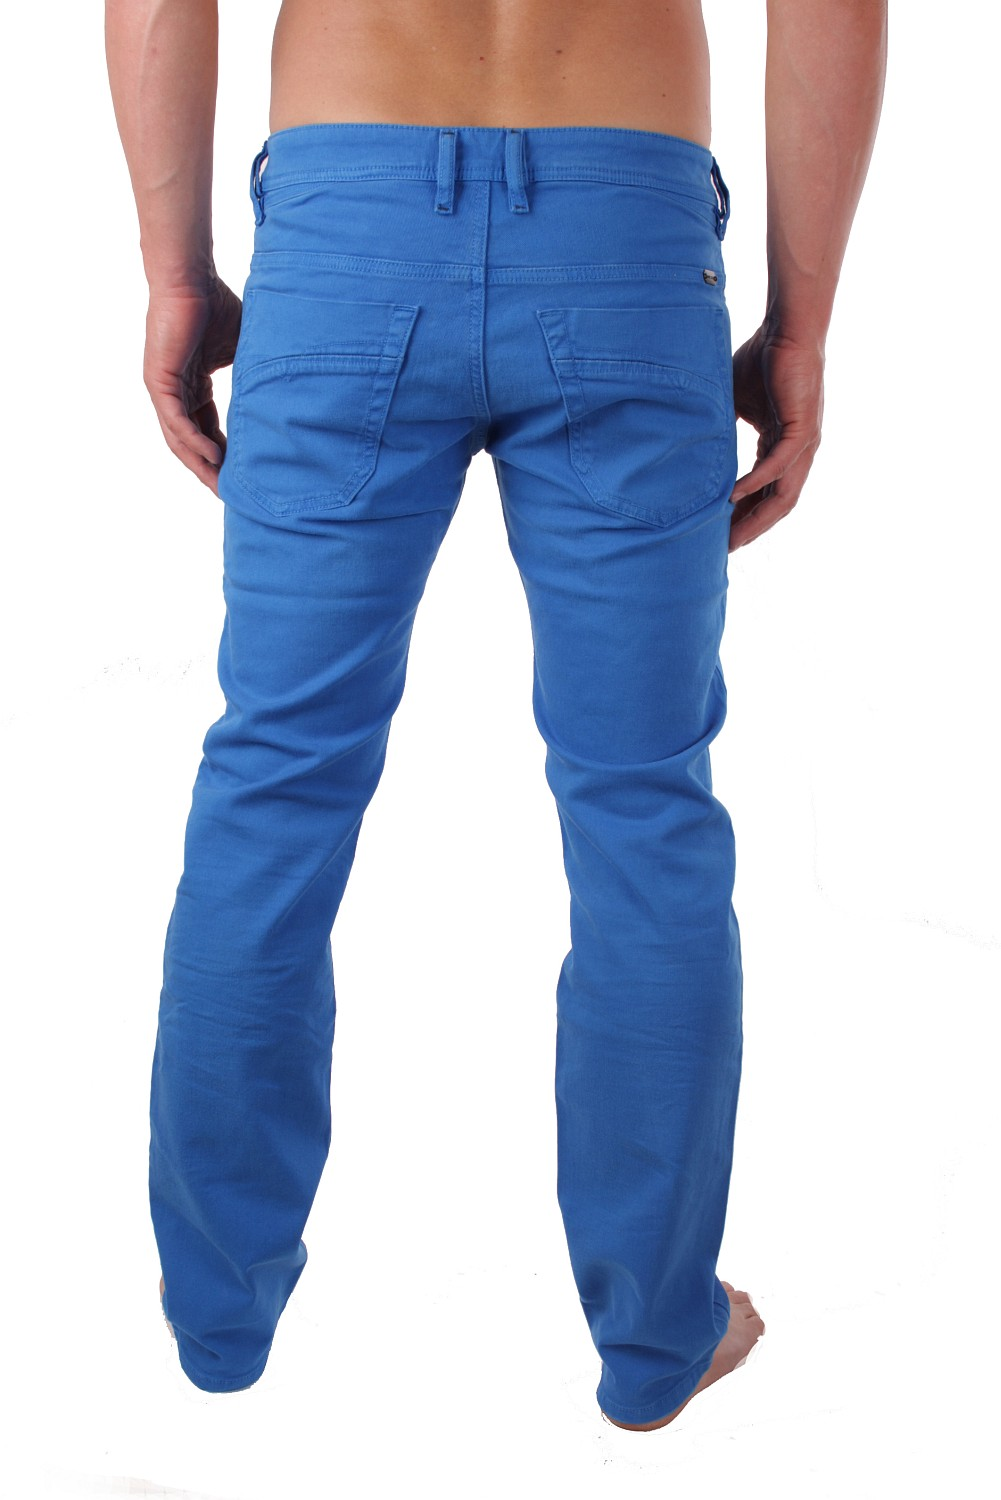 diesel herren jeans hose iakop slim stretch 0111d blau ebay. Black Bedroom Furniture Sets. Home Design Ideas